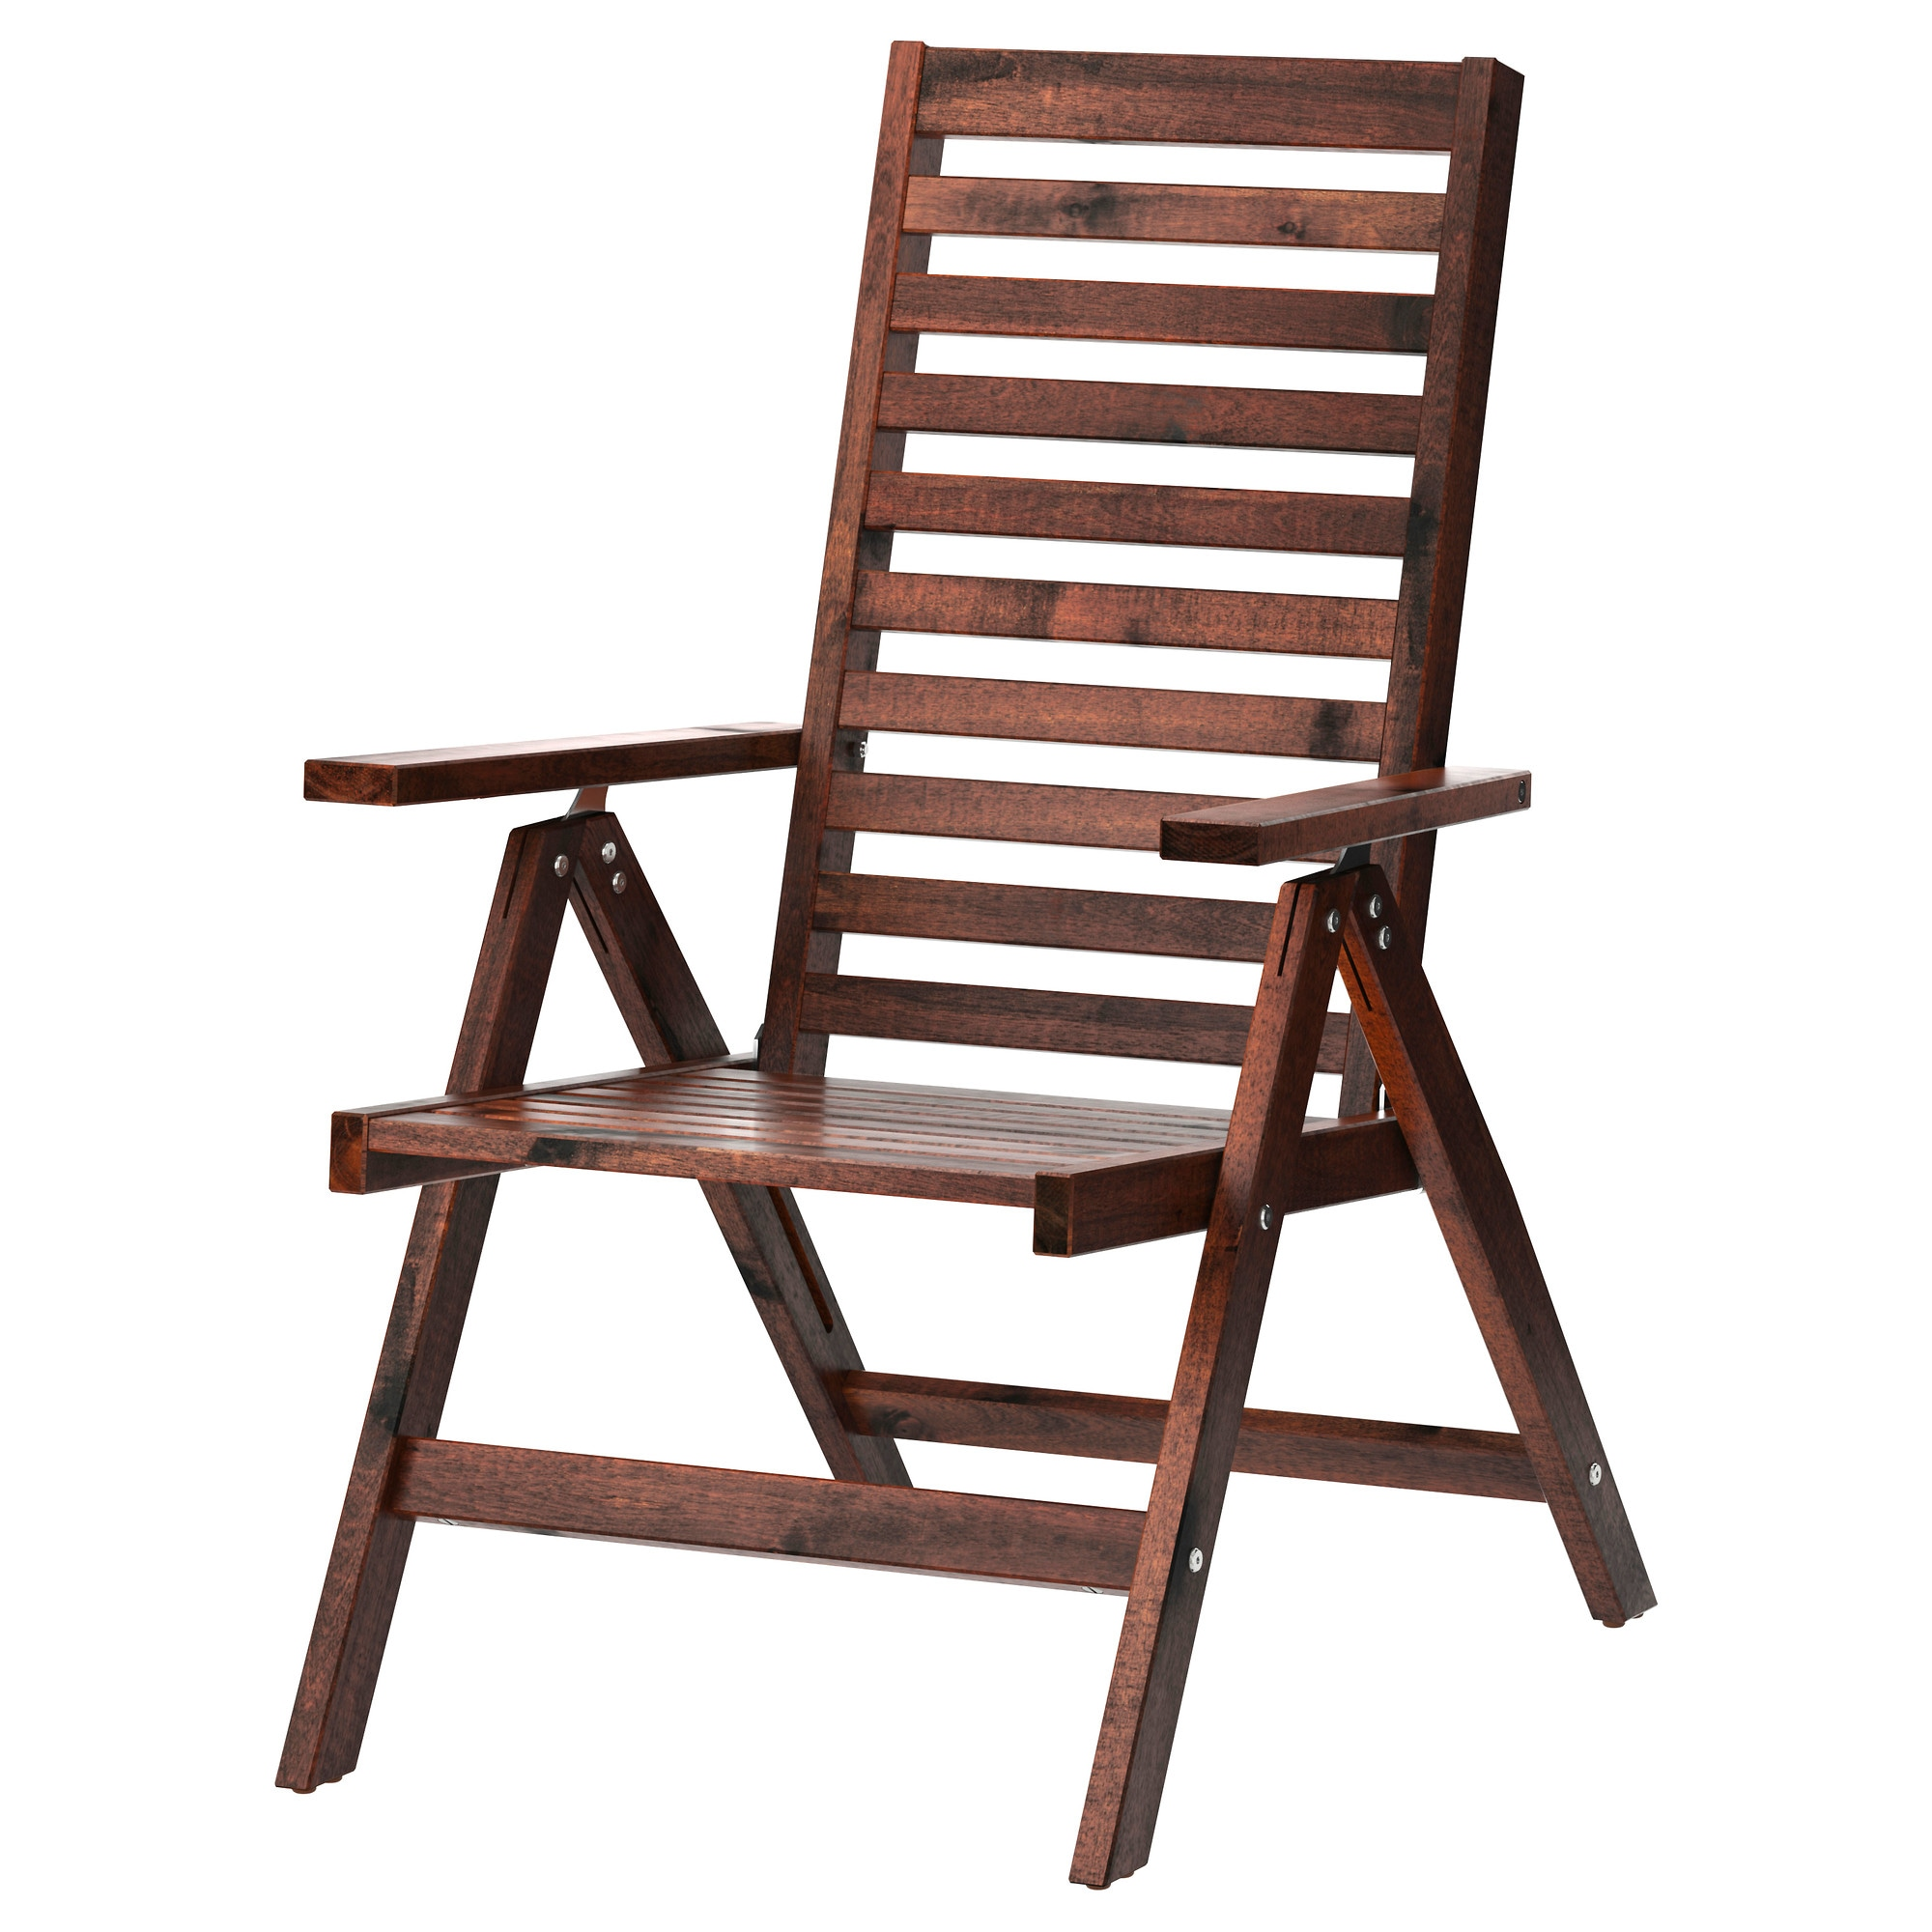 ÄPPLARÖ Reclining Chair, Outdoor, Foldable Brown Brown Stained Brown Width:  24 3/